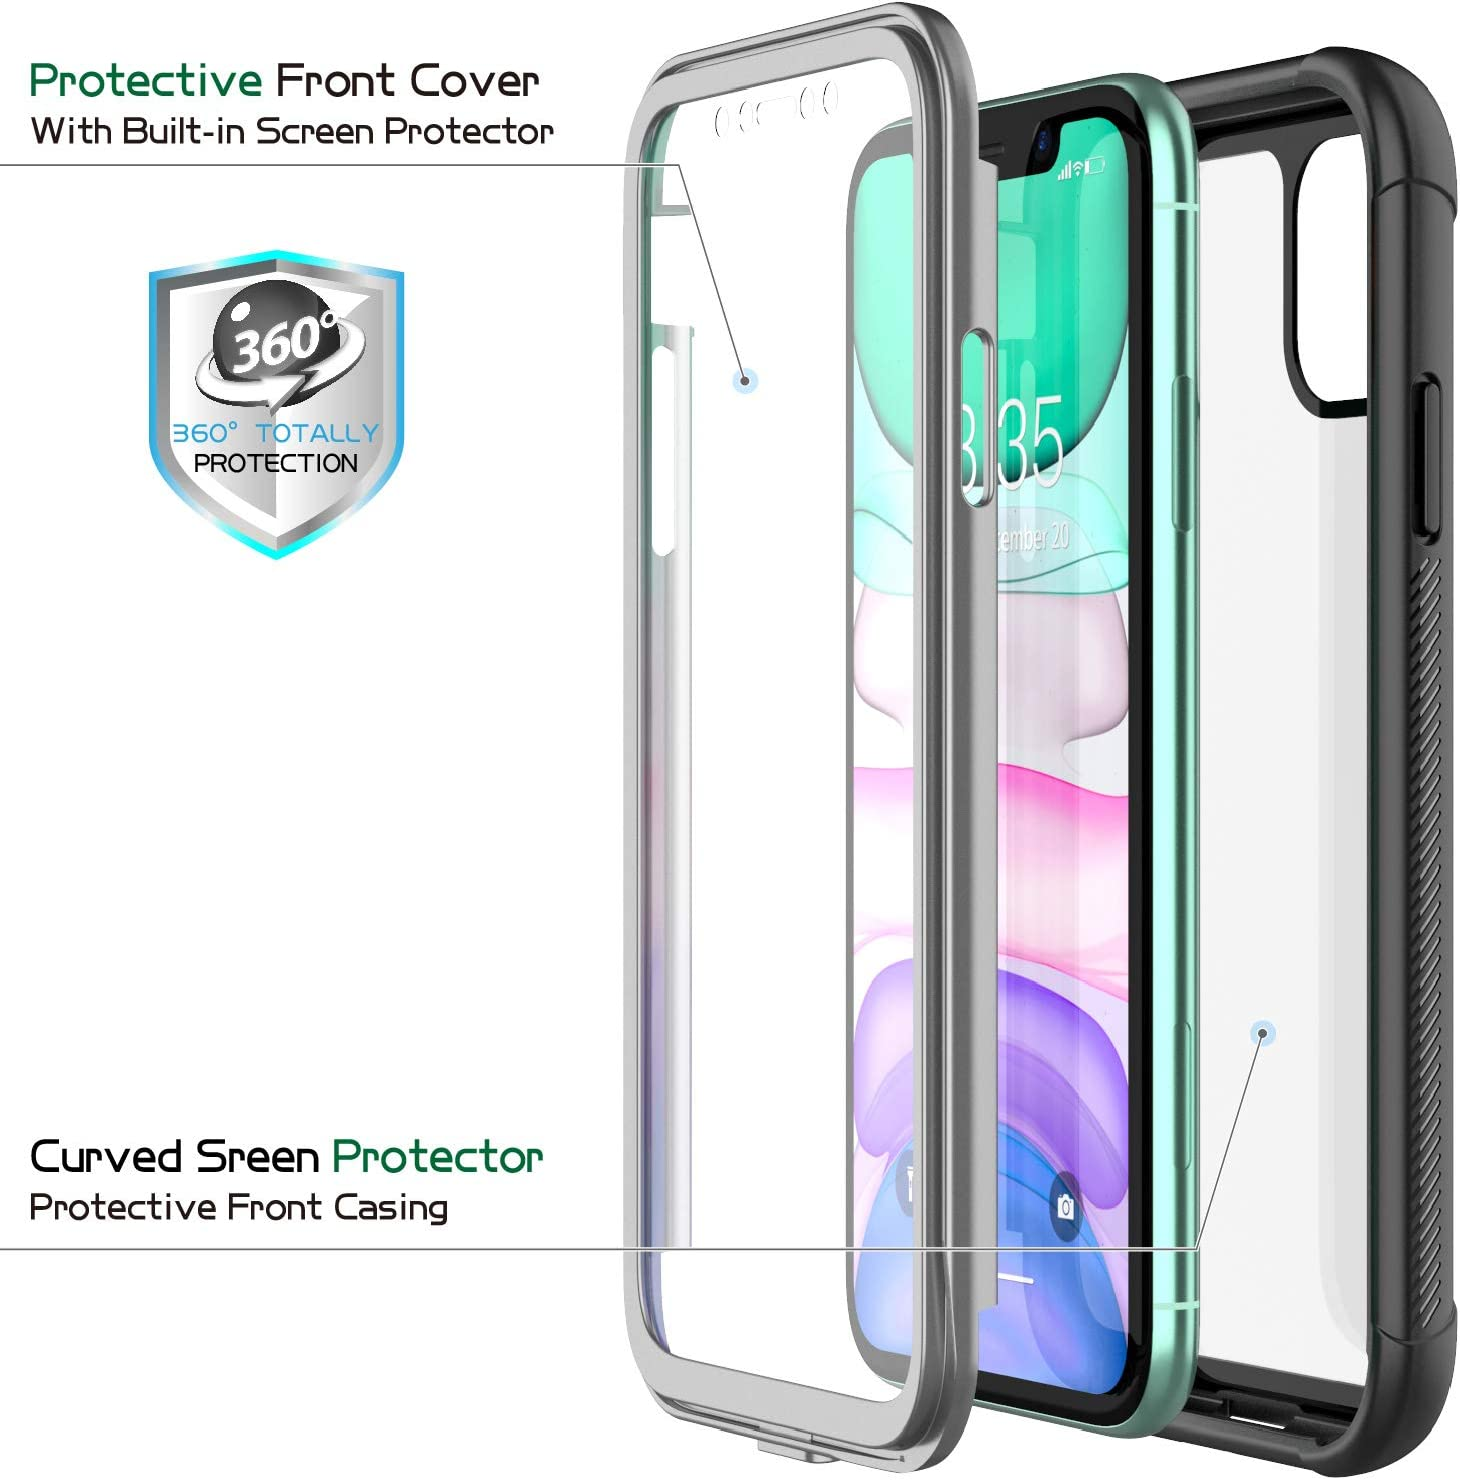 Black+Clear Shockproof Full-Body Heavy Duty Protection with Built-in Screen Protector Rugged Armor Cover for iPhone 11 6.1 Inch 2019 Release Eonfine iPhone 11 Case